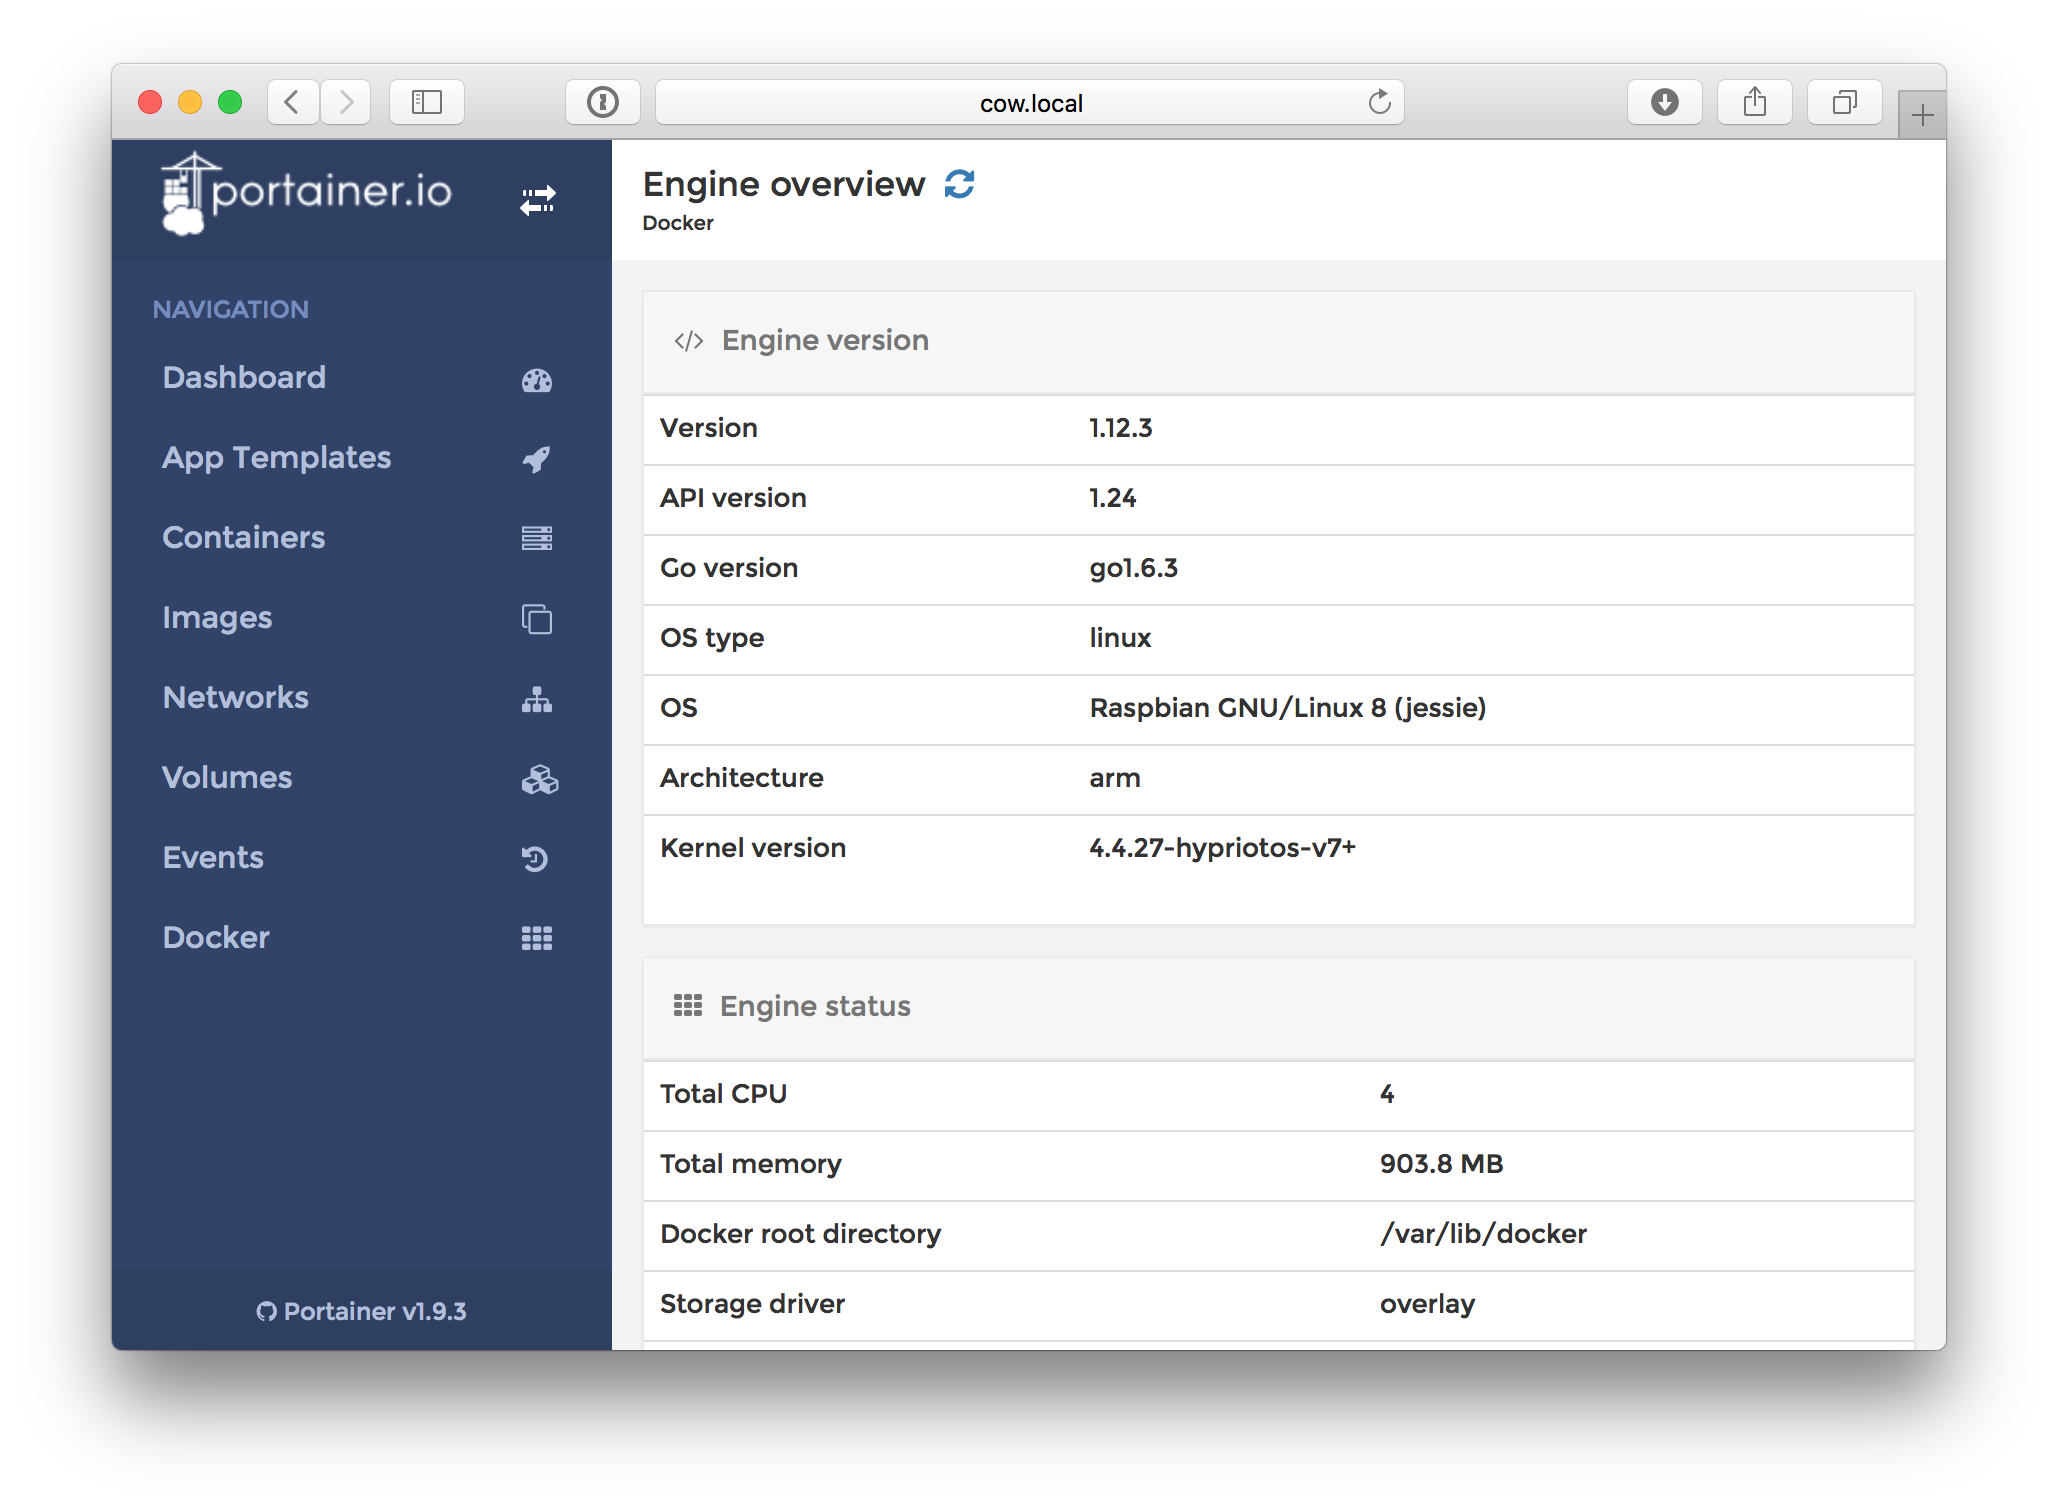 Portainer - Docker Dashboard